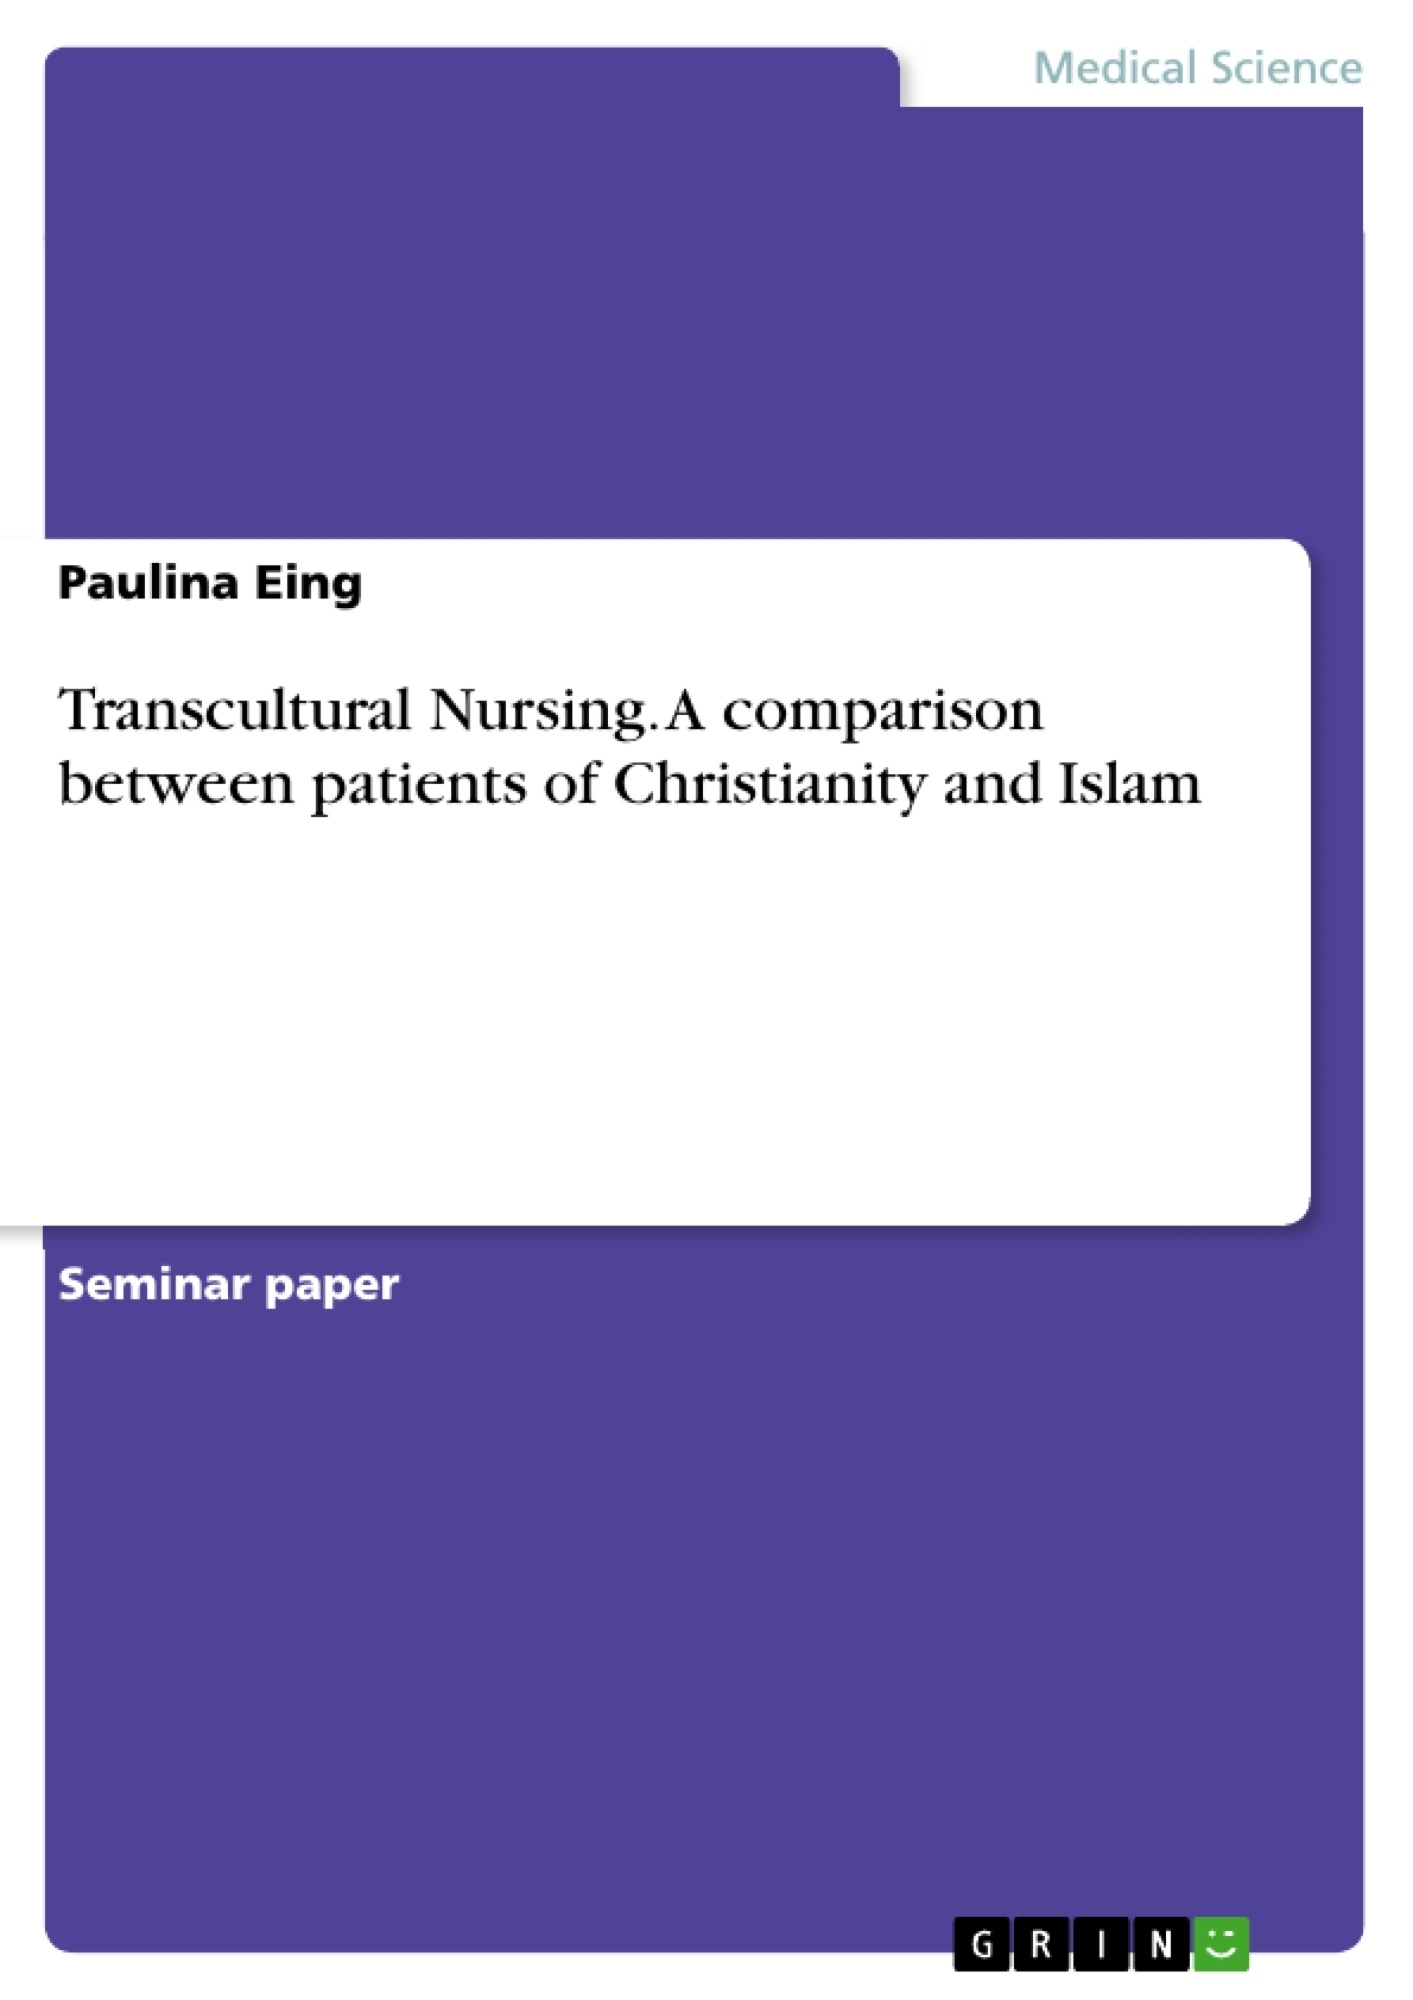 Title: Transcultural Nursing. A comparison between patients of Christianity and Islam